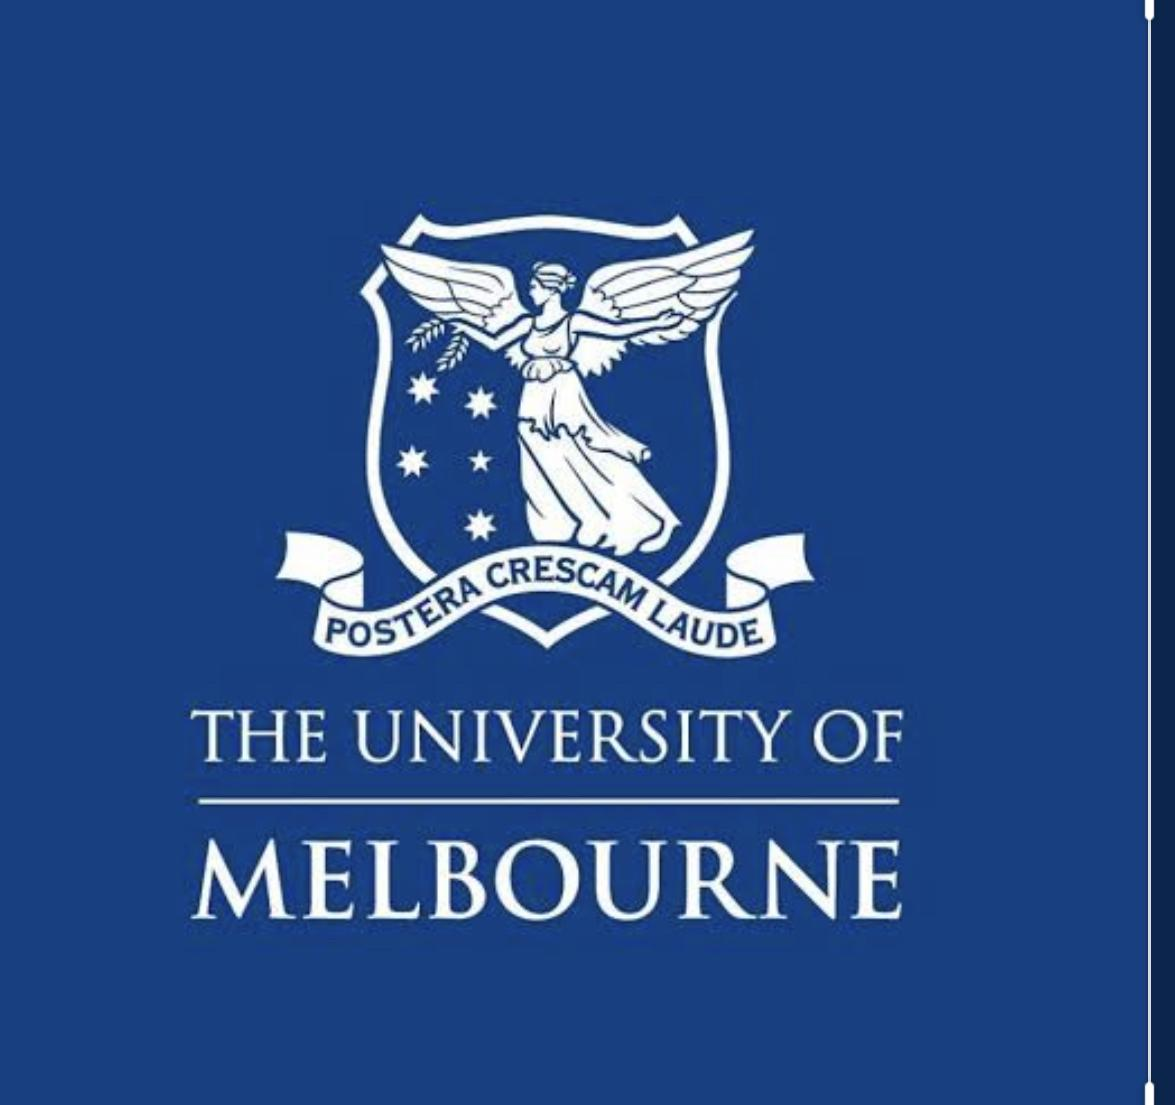 University of Melbourne girledworld .jpeg